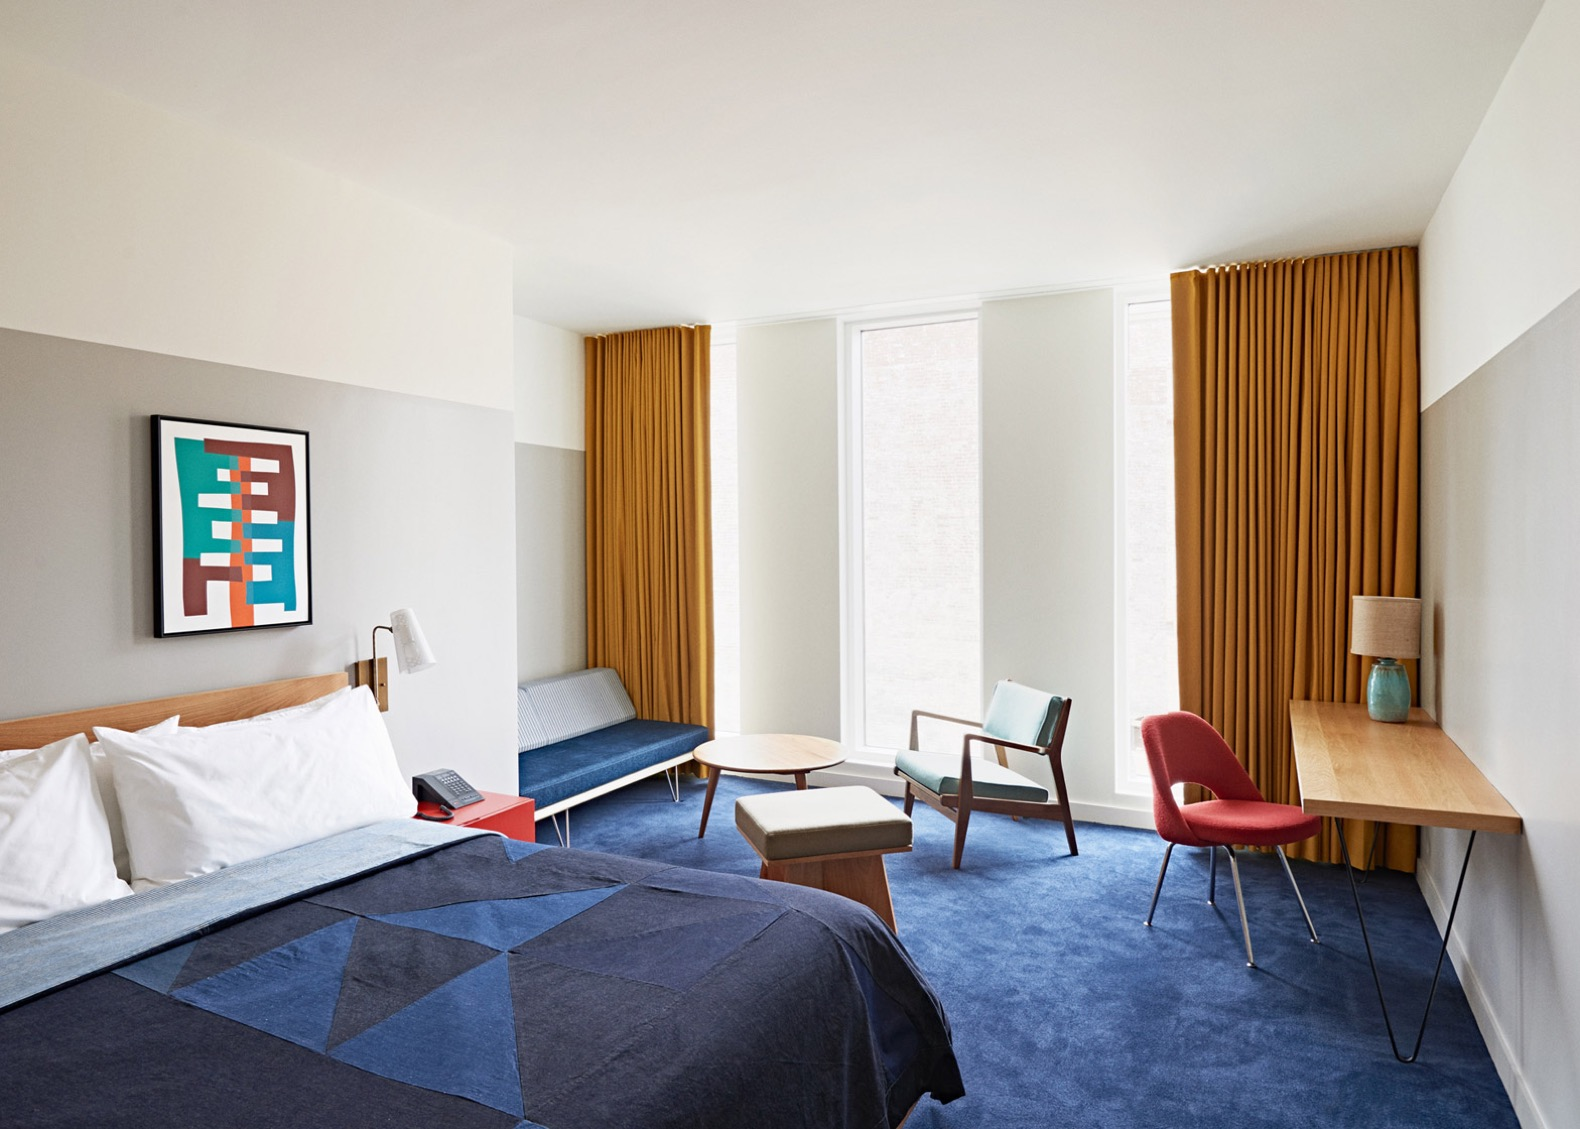 1960S Interior Design Striking 1960S Bank Transformed Into Retrochic Durham Hotel